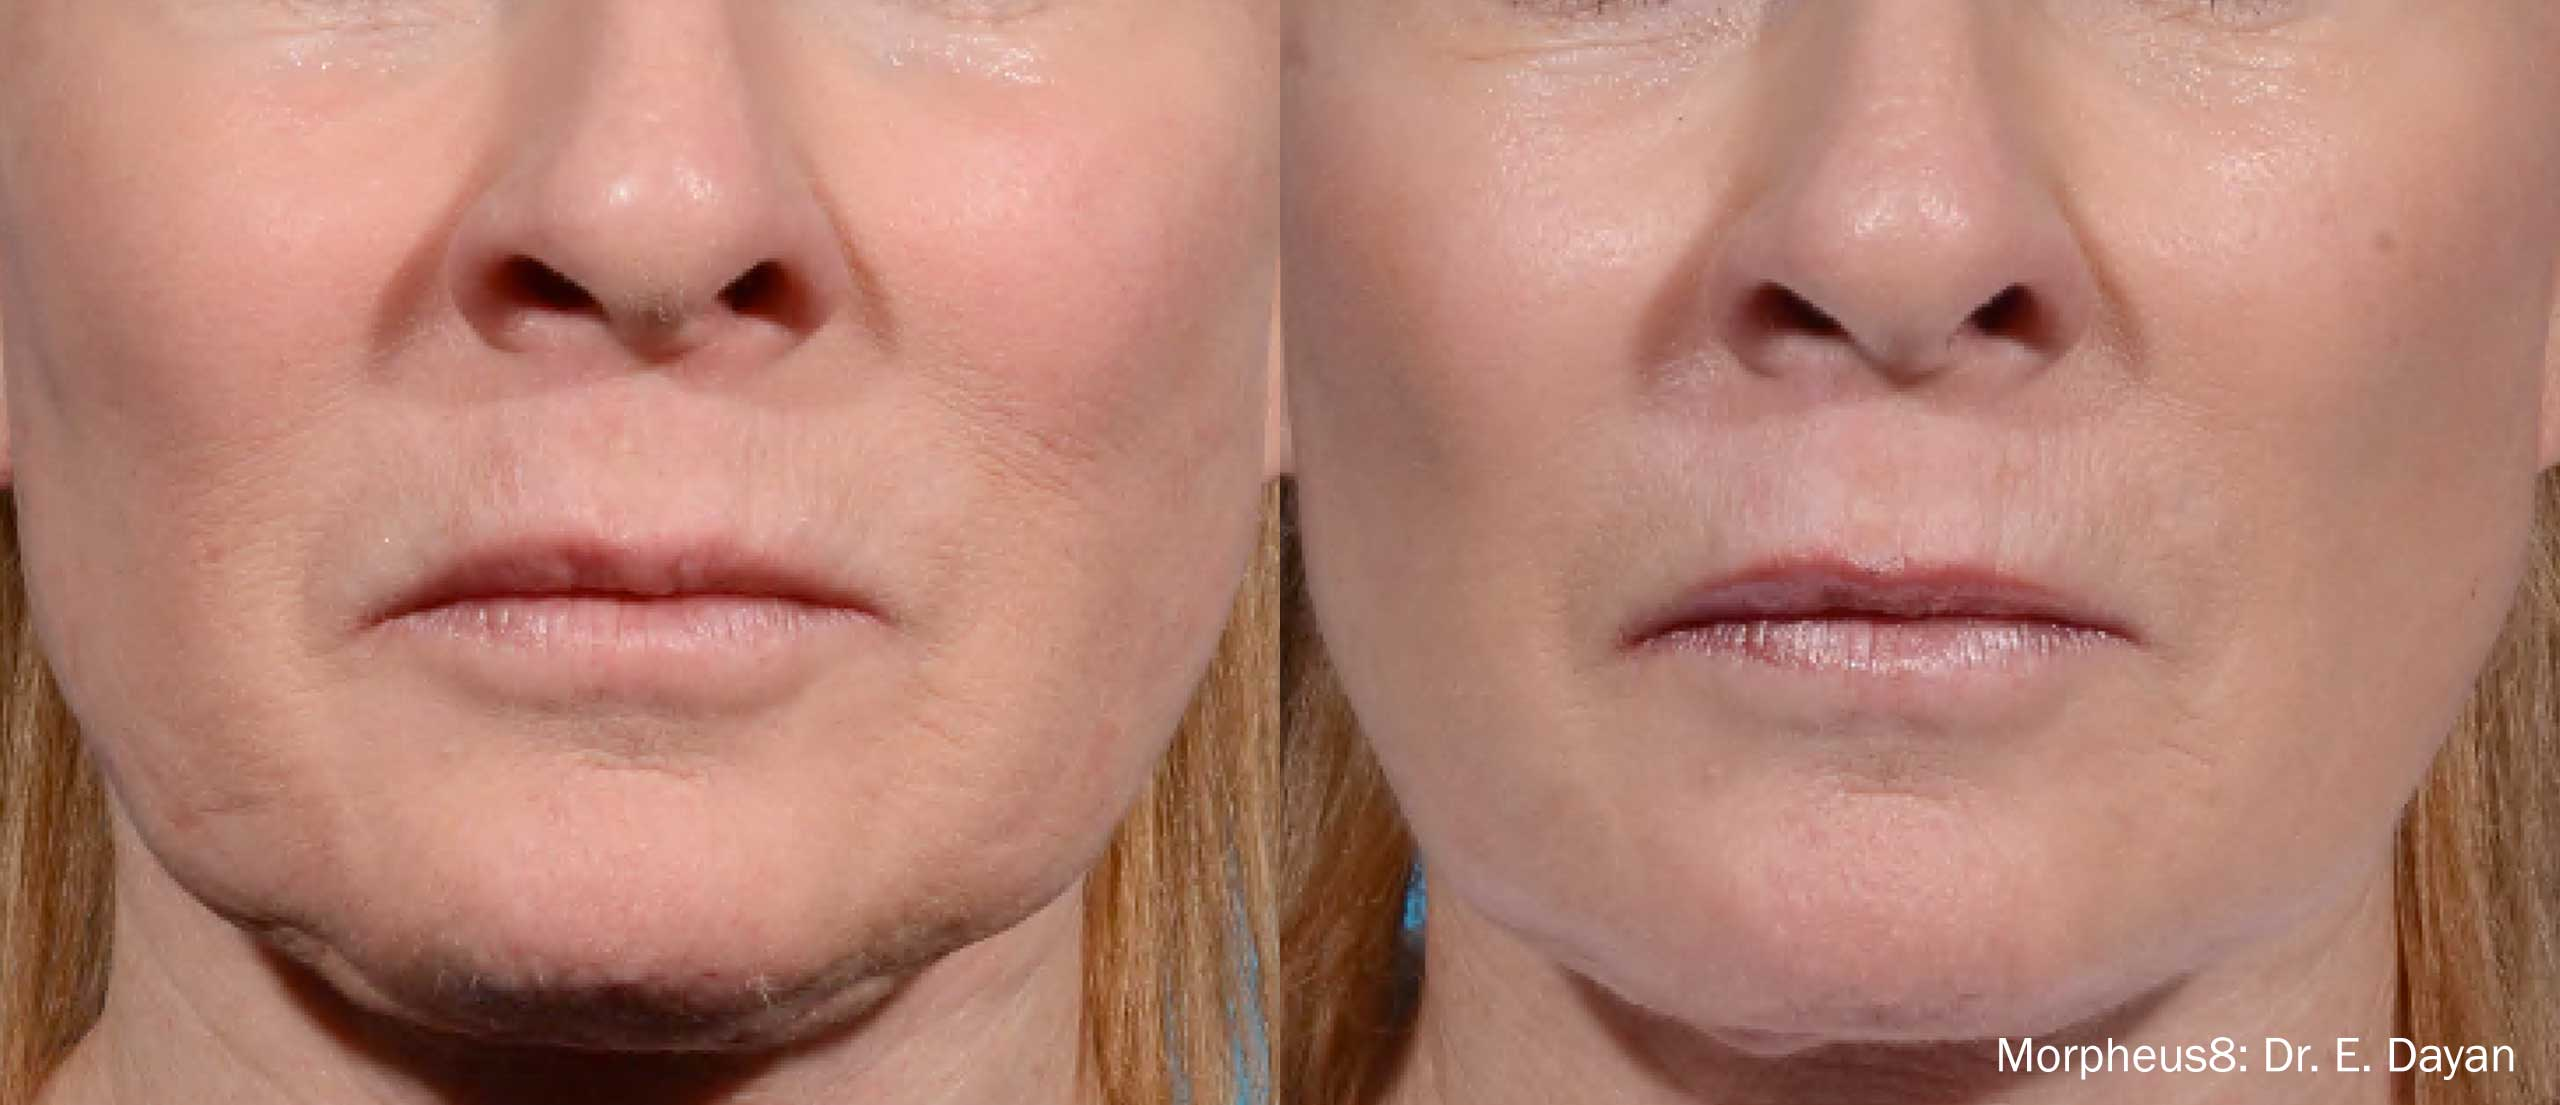 before and after results a patient's Morpheus8 treatment in NY, NY